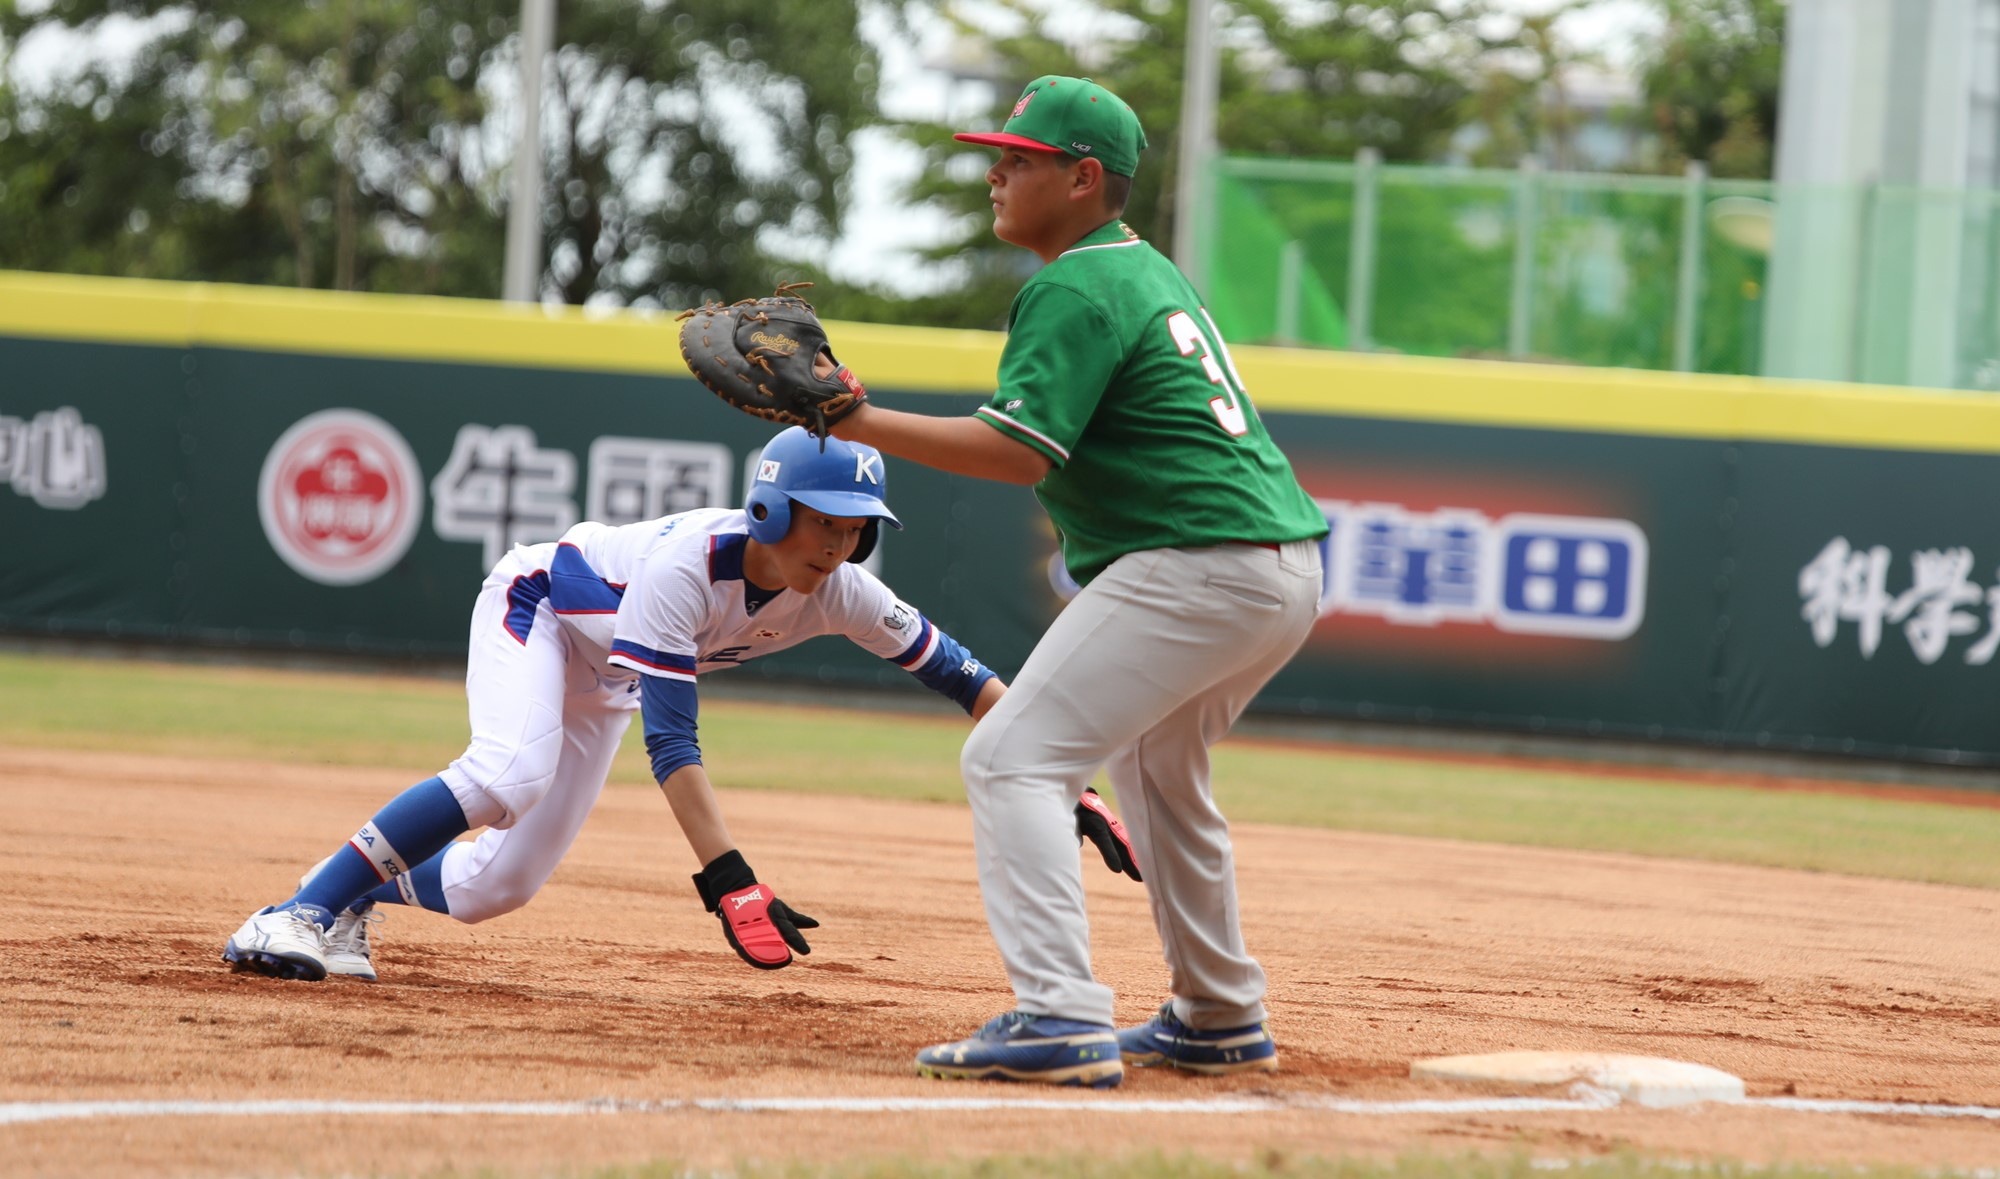 Jose Lavagnino defends first base for Mexico